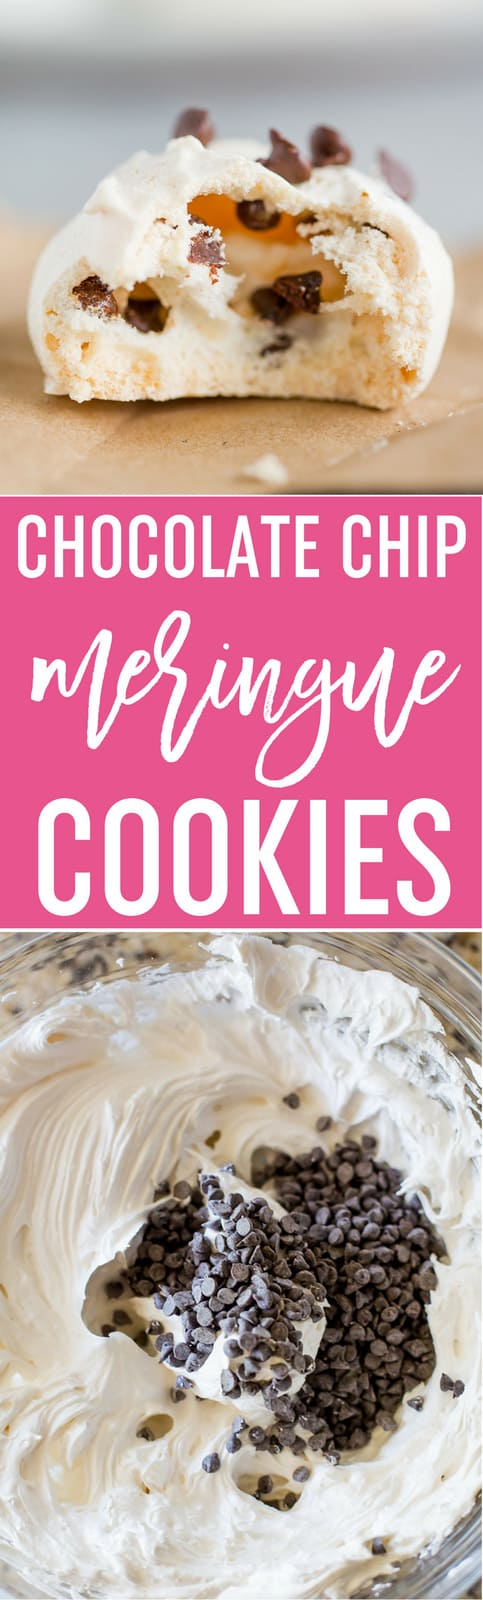 Chocolate Chip Meringue Cookies - These easy meringue cookies are loaded with mini chocolate chips and are perfect for any occasion, especially for holiday cookie exchanges and cookie trays! #baking #cookies #recipe #meringue #chocolatechips #easyrecipe